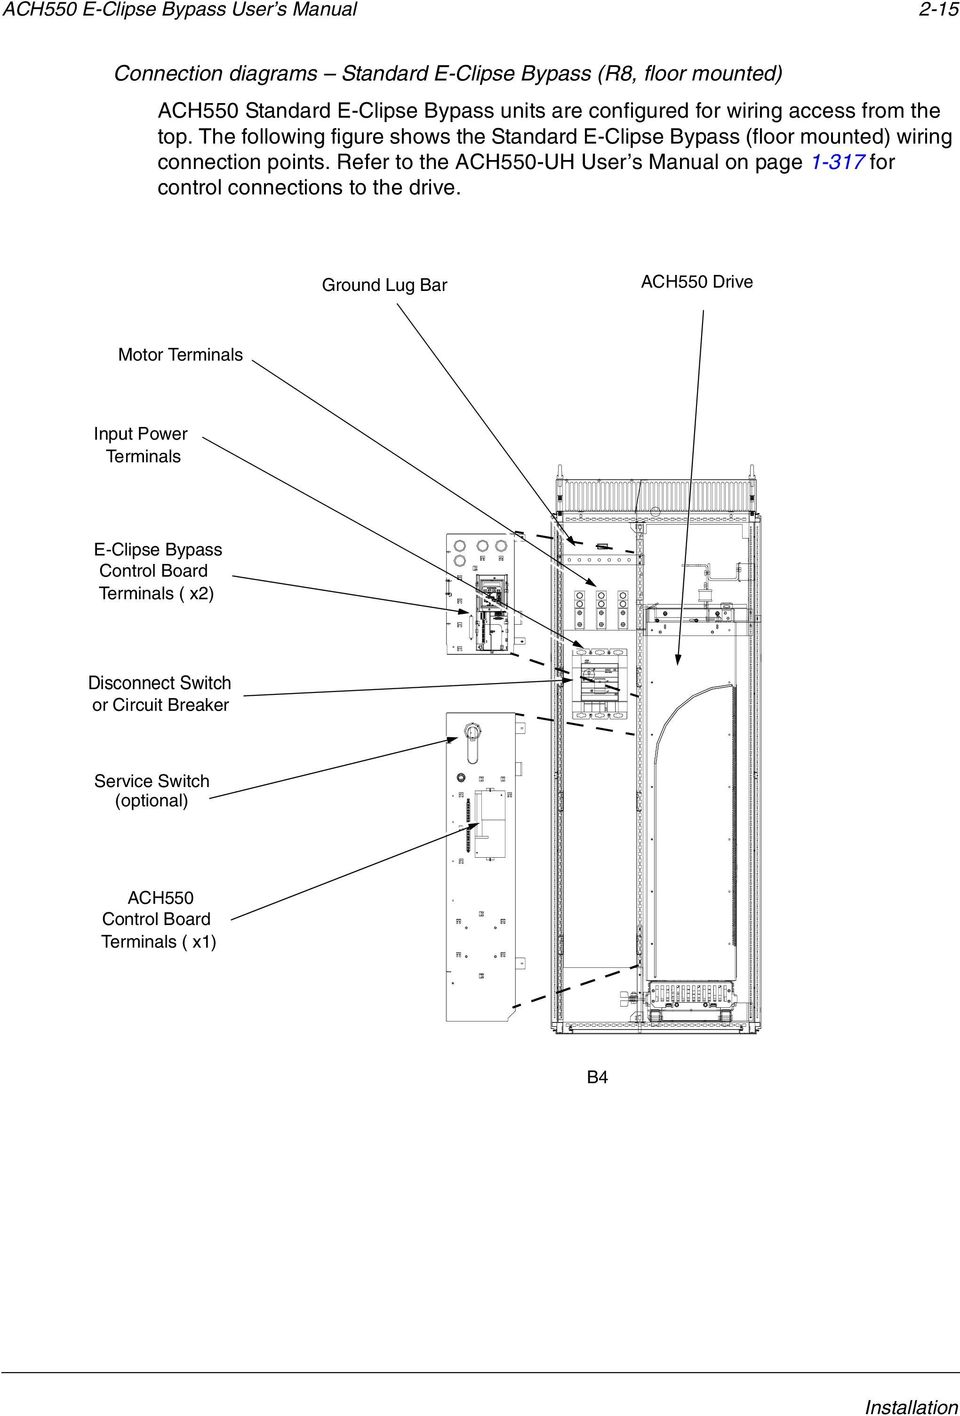 medium resolution of refer to the ach550 uh user s manual on page 1 317 for control